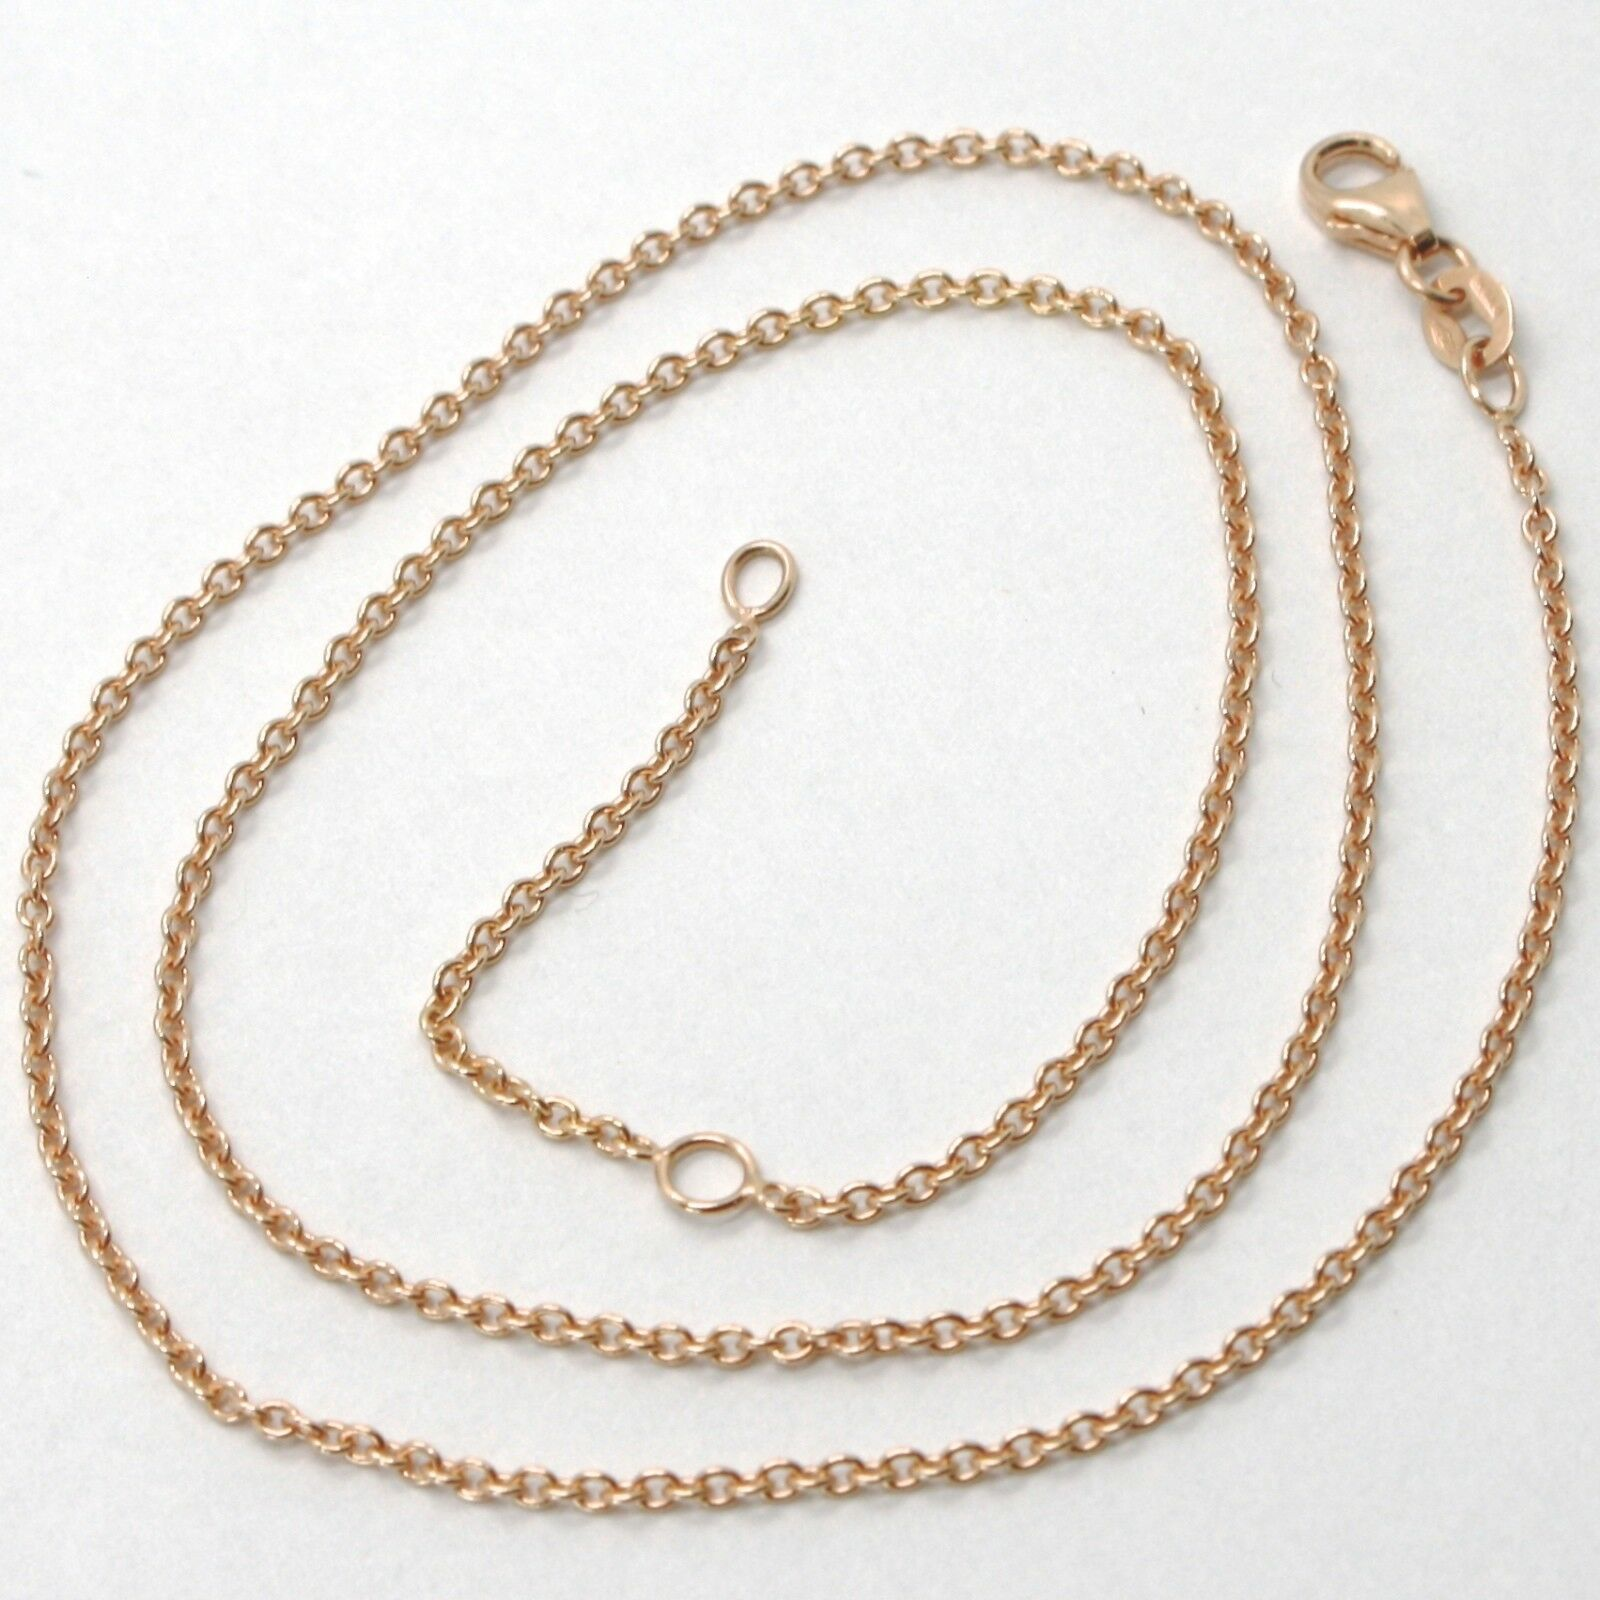 18K ROSE GOLD CHAIN 1.2 MM ROLO ROUND CIRCLE LINK, 23.6 INCHES, MADE IN ITALY